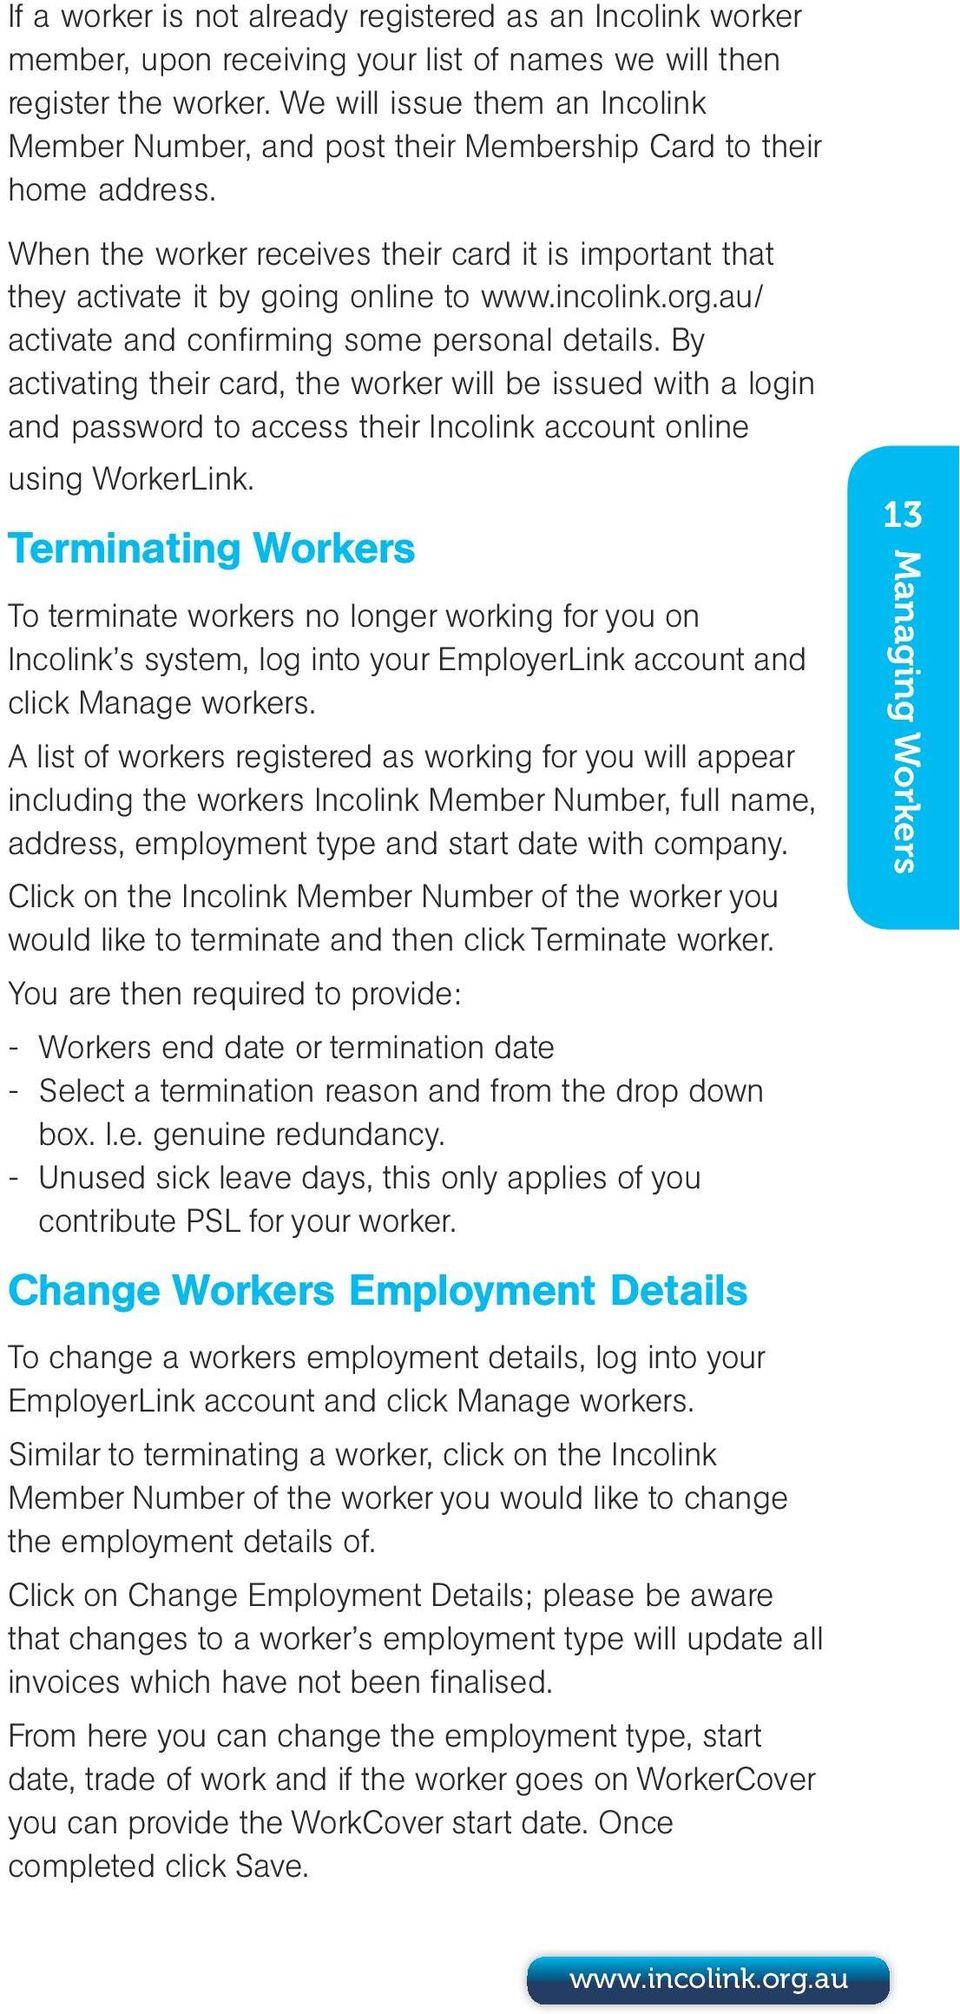 incolink.org.au/ activate and confirming some personal details. By activating their card, the worker will be issued with a login and password to access their Incolink account online using WorkerLink.